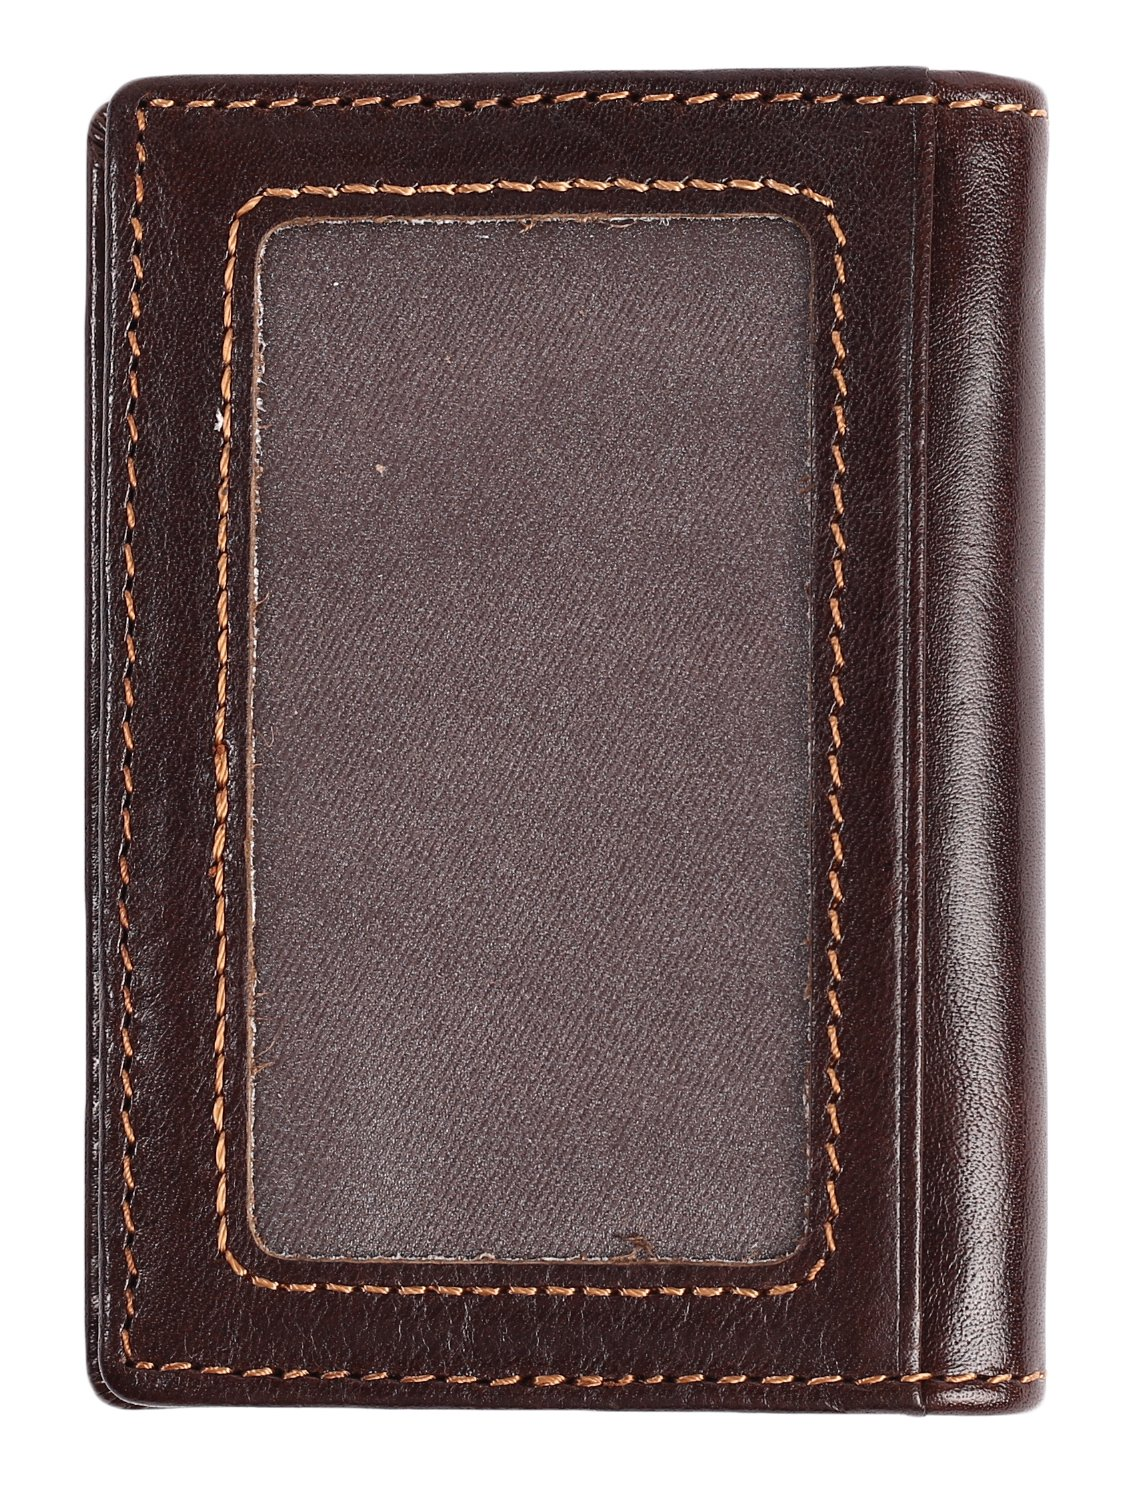 RFID Slim Wallet Men Thin Bifold Front Pocket Wallet Genuine Leather Card Holder (Coffee) by Easyoulife (Image #3)